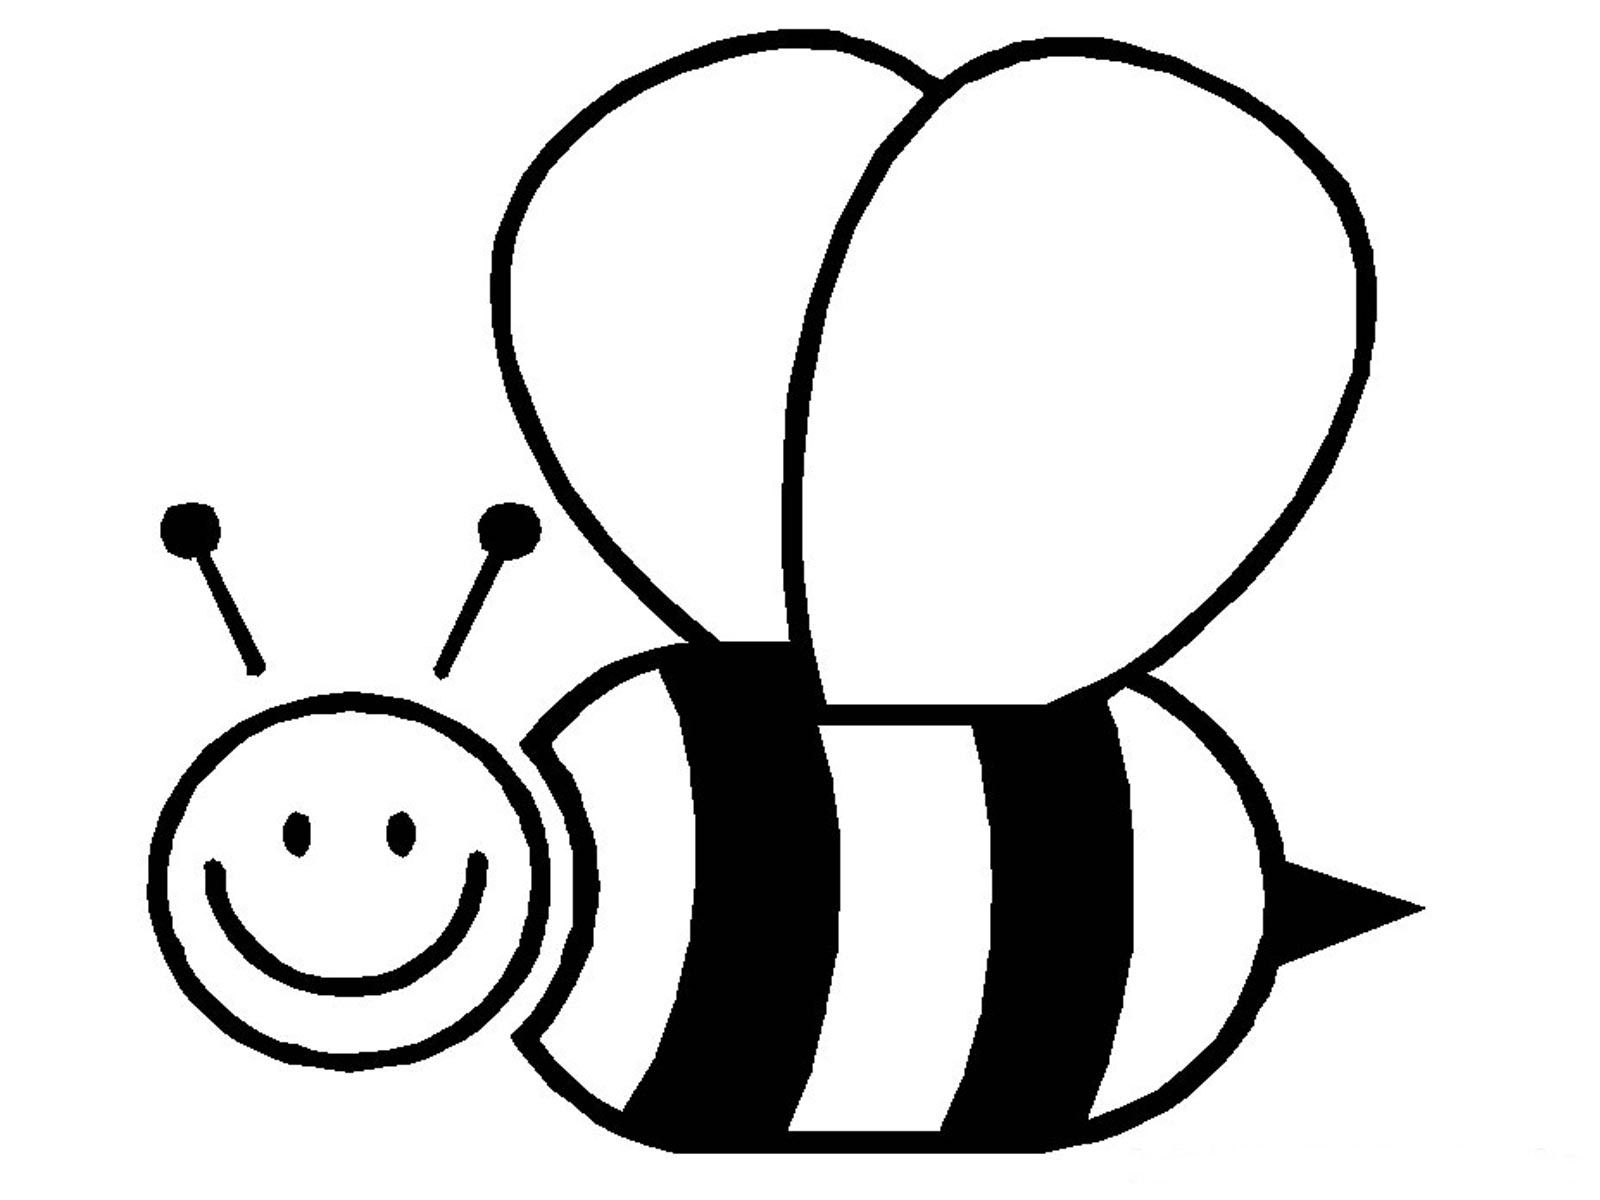 Free Printable Bumble Bee Coloring Pages For Kids Bee Coloring Pages Bee Template Bee Printables